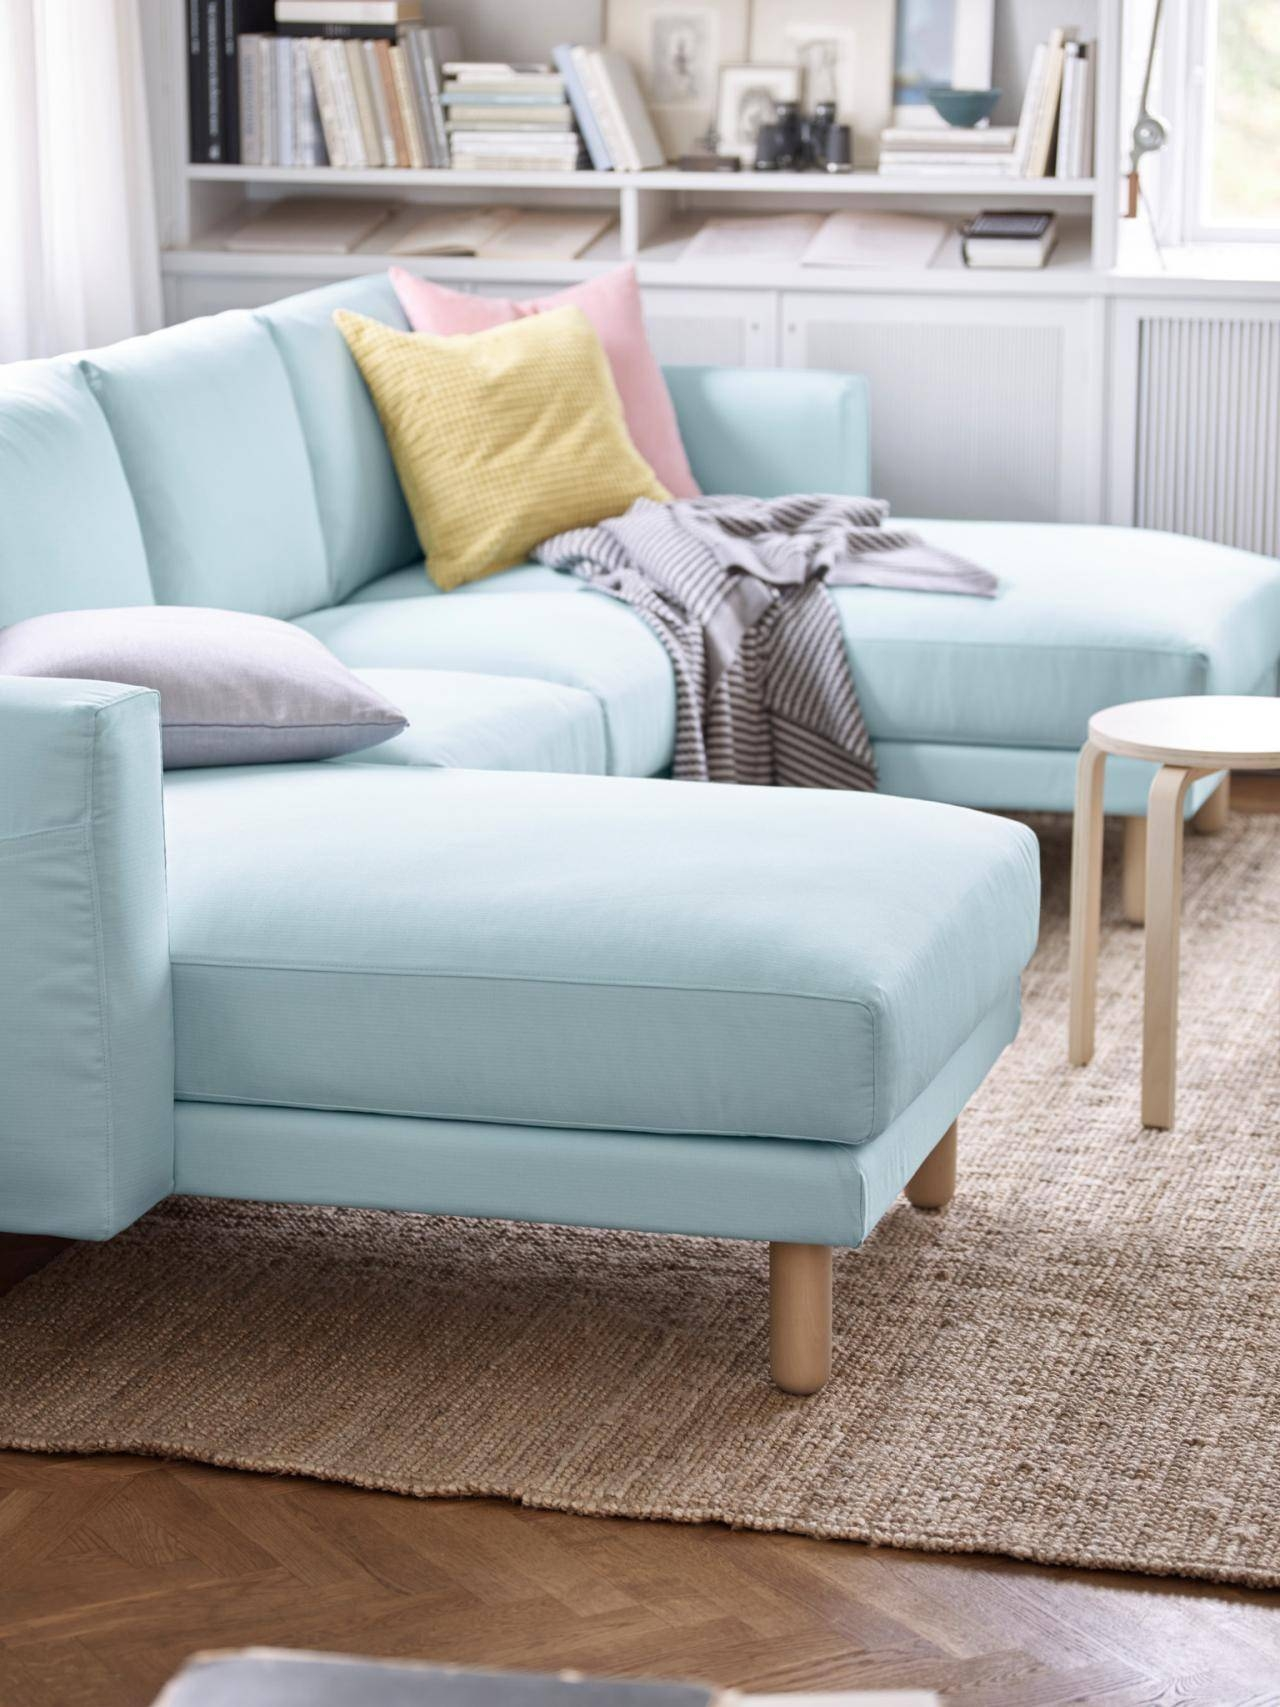 Furniture: West Elm Sectional Sofa | West Elm Furniture Reviews in West Elm Sectional Sofa (Image 15 of 30)